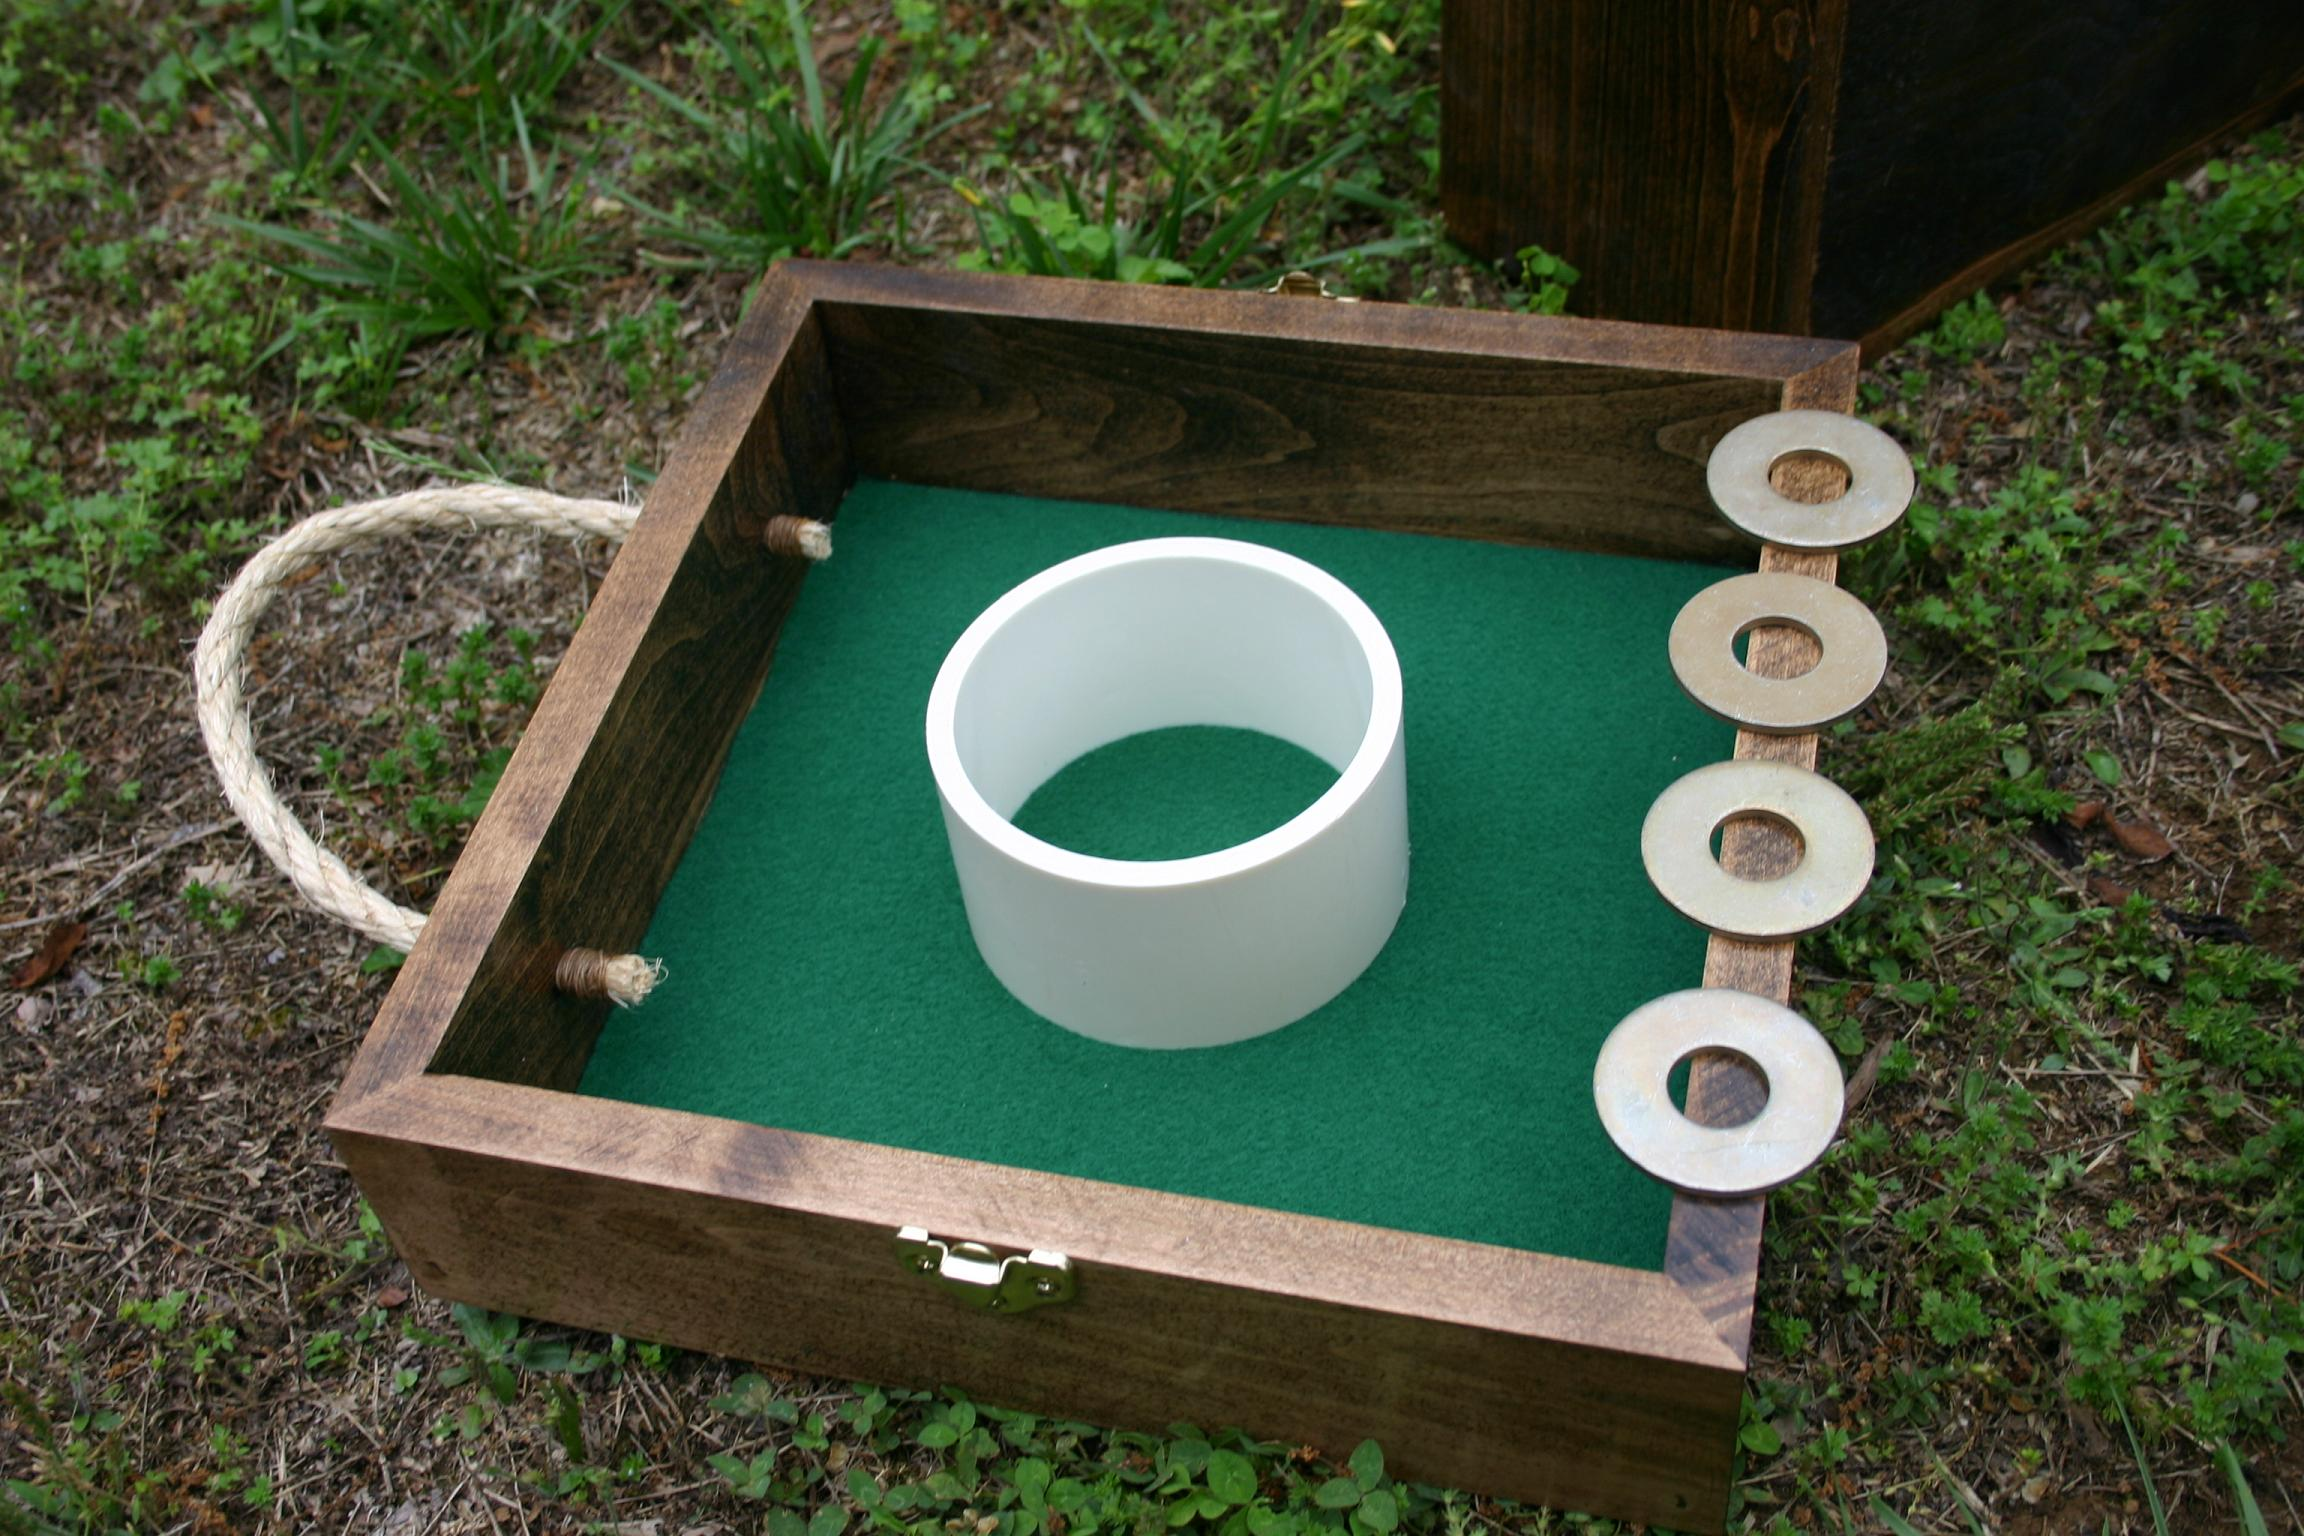 washer toss tailgate game the gopong 3 hole bag toss washer toss